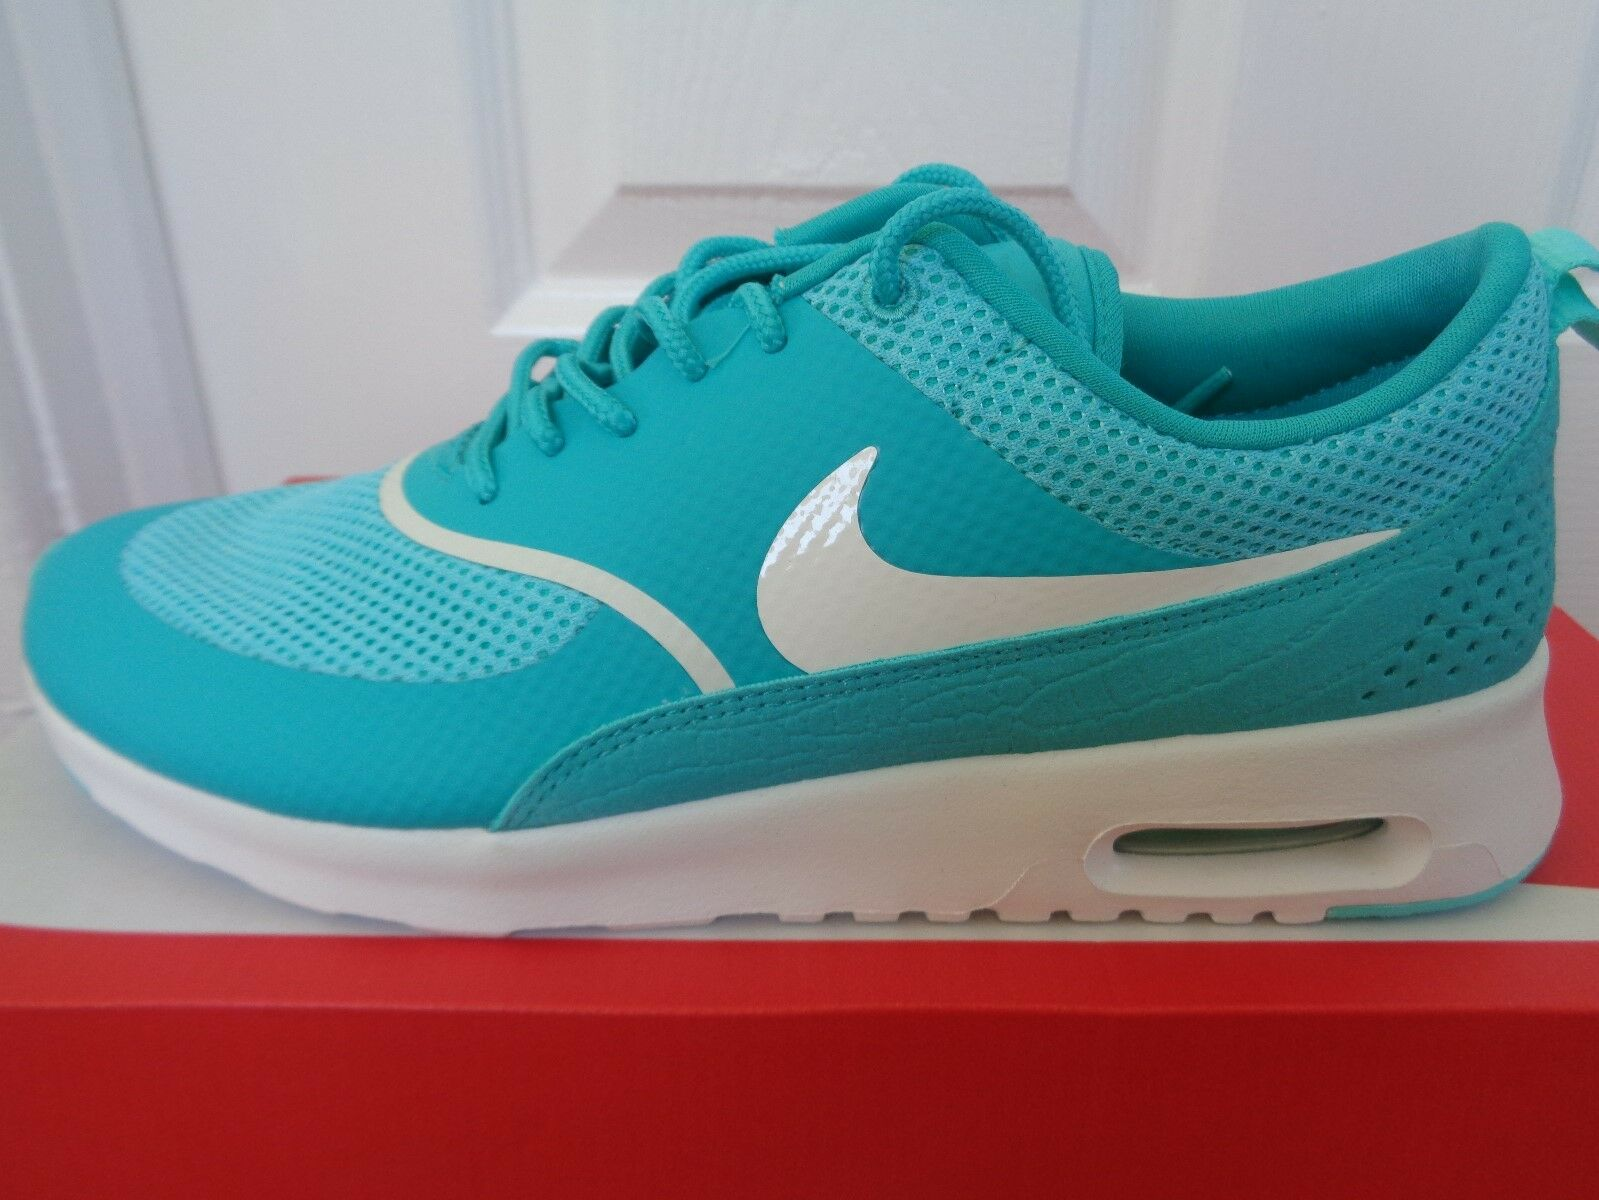 Nike Air Max Thea wmns trainers chaussures 599409 307 uk 6.5 eu 40.5 us 9 NEW+BOX